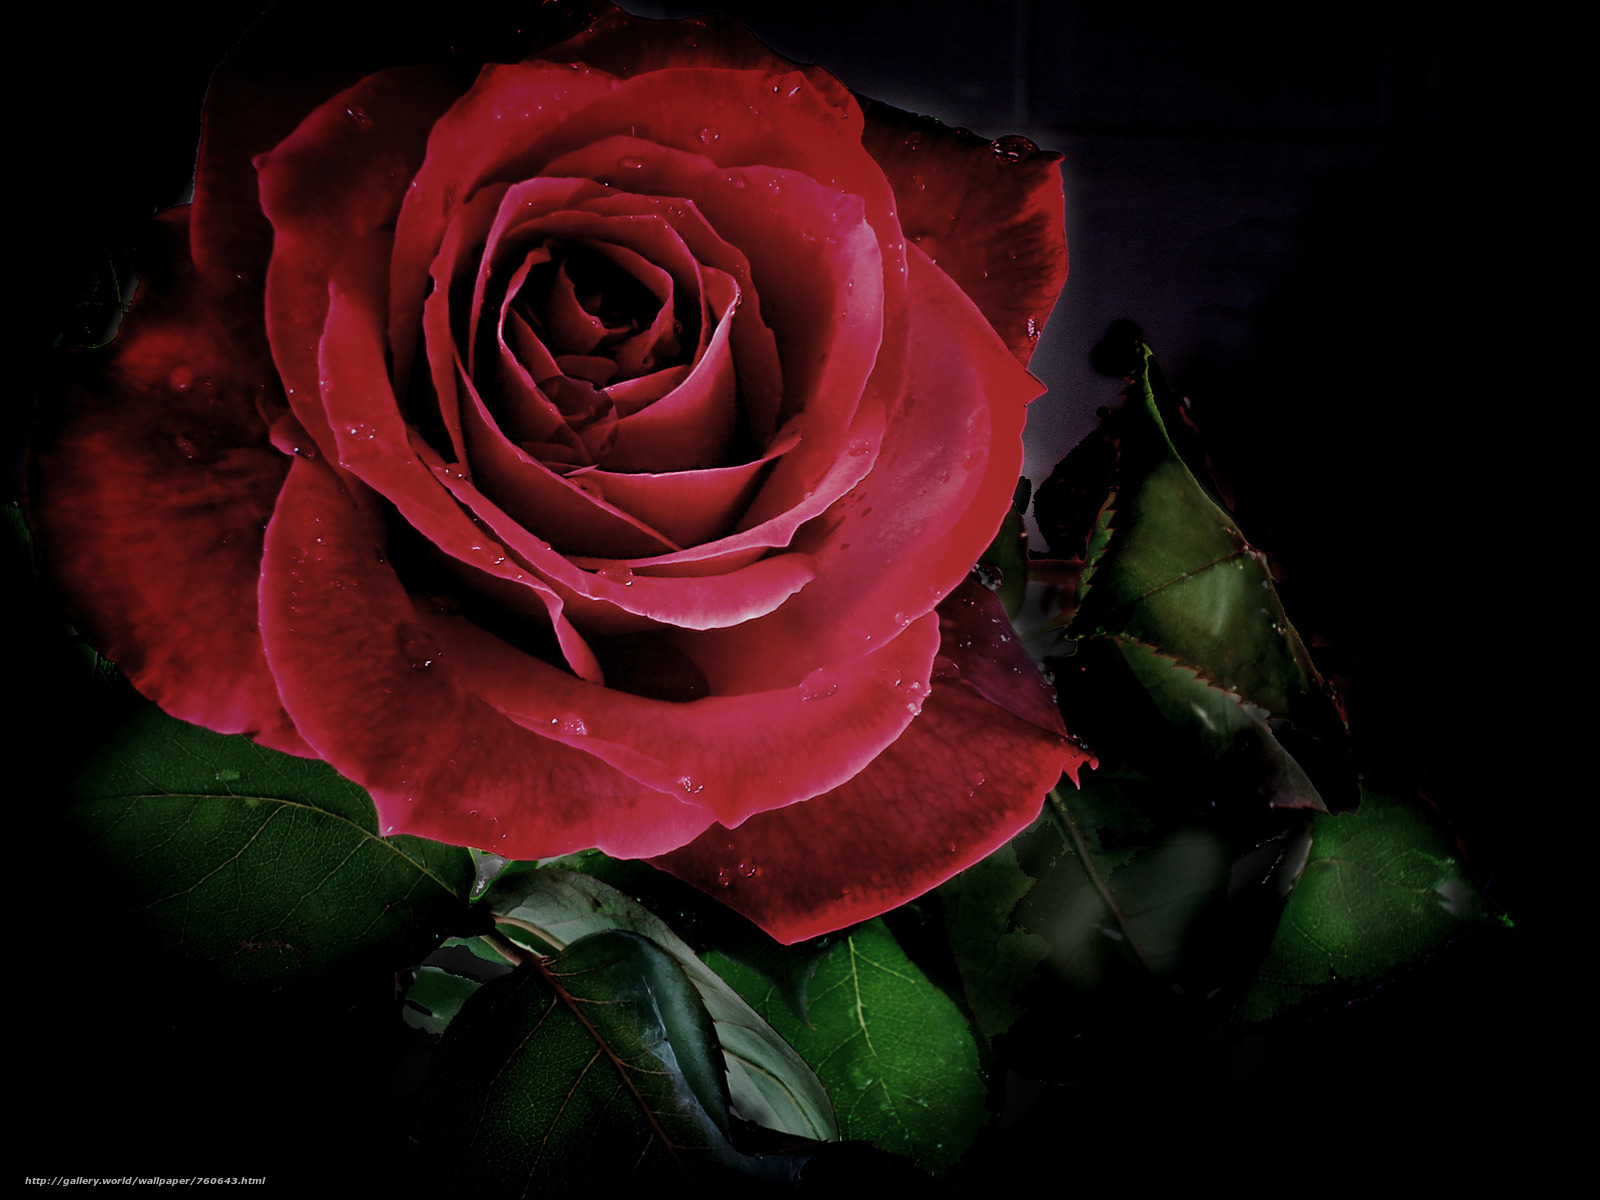 rose flower, flower, Black background, flora